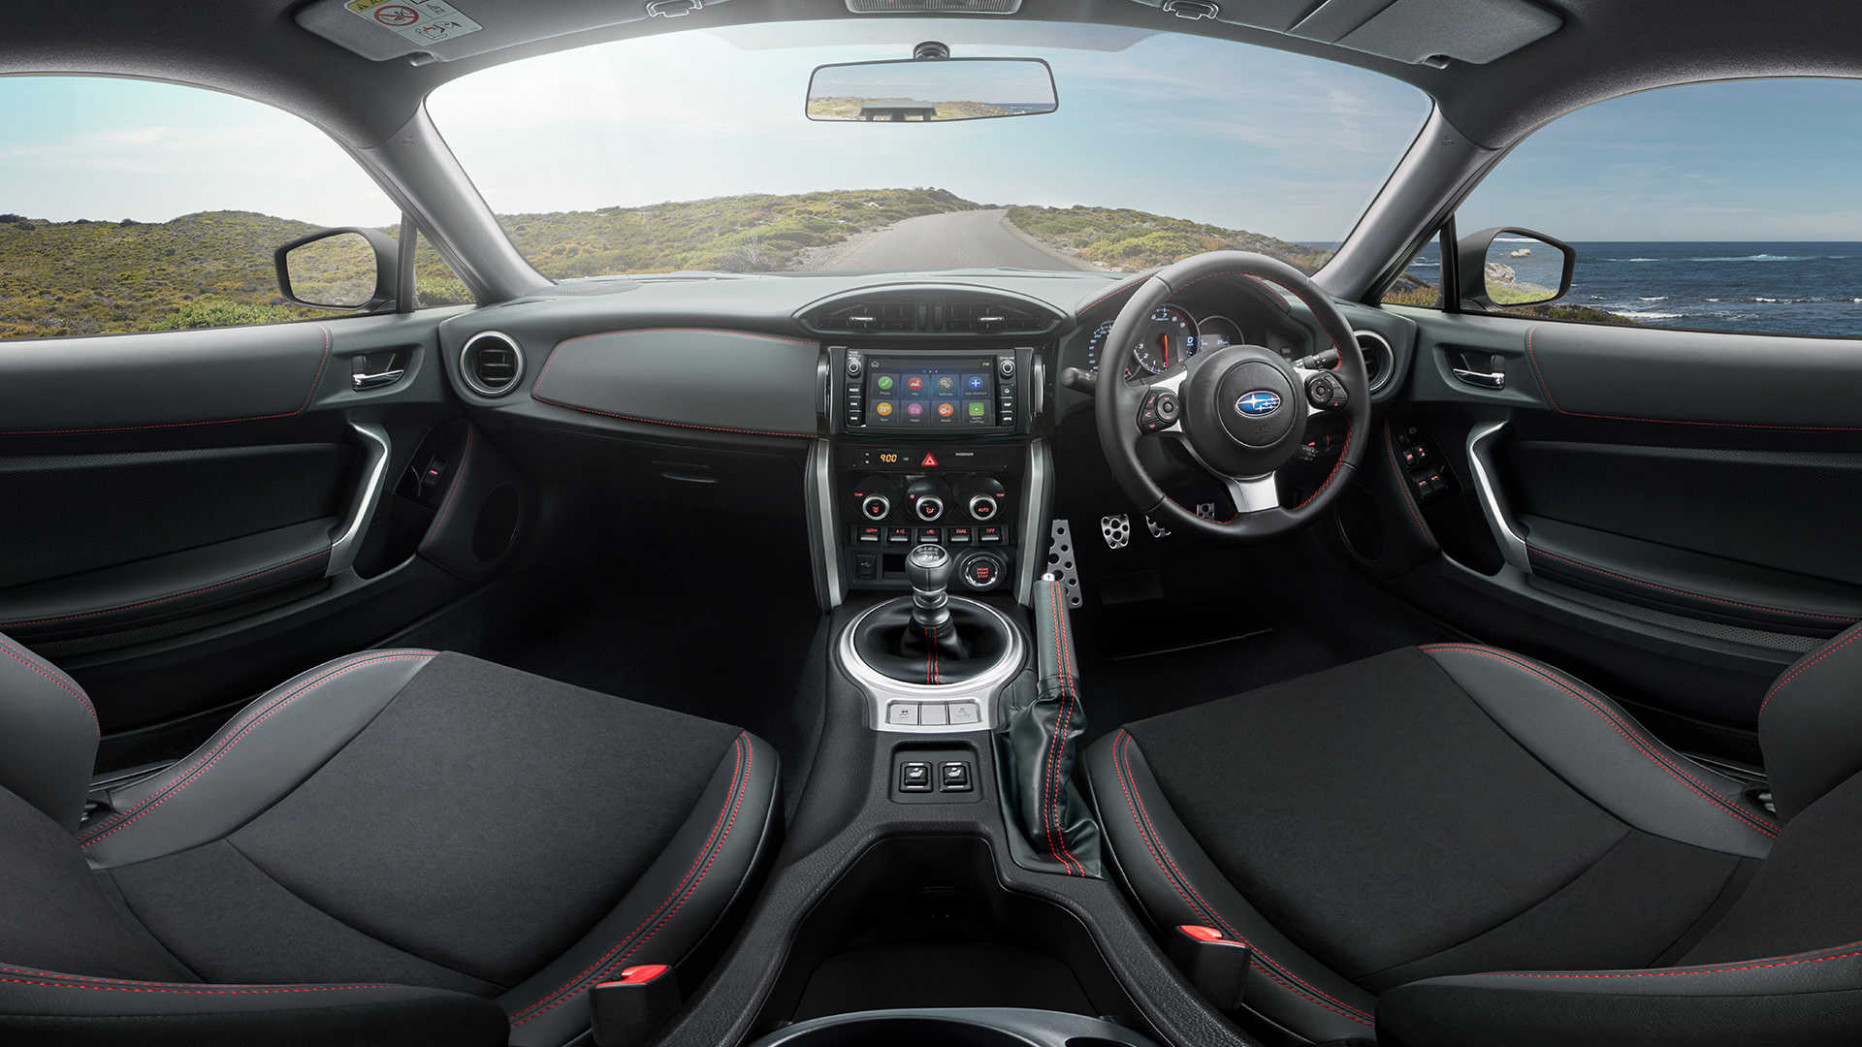 Experience a 7 View of the 7 Subaru BRZ Interior | Subaru - subaru brz 2020 interior